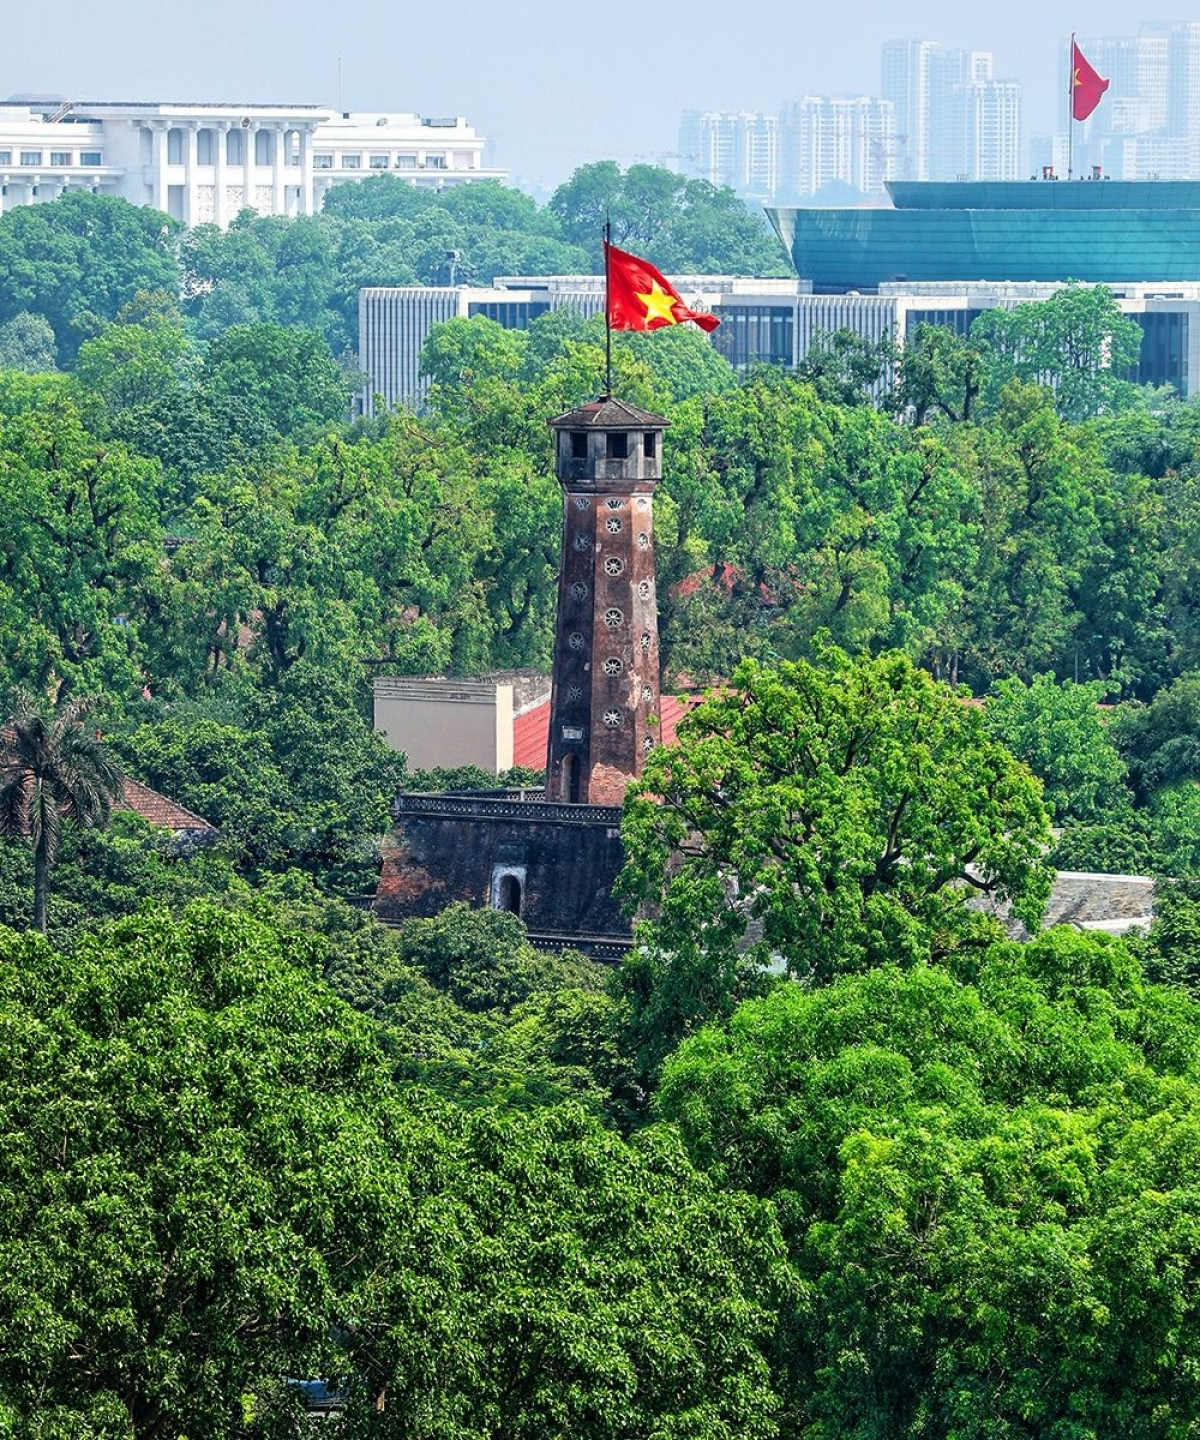 Situated in Hanoi, the capital'sflag tower is one of the city's key symbols and is part of the world heritage site Thang Long Imperial Citadel. (Photo: Vu Minh Quan)